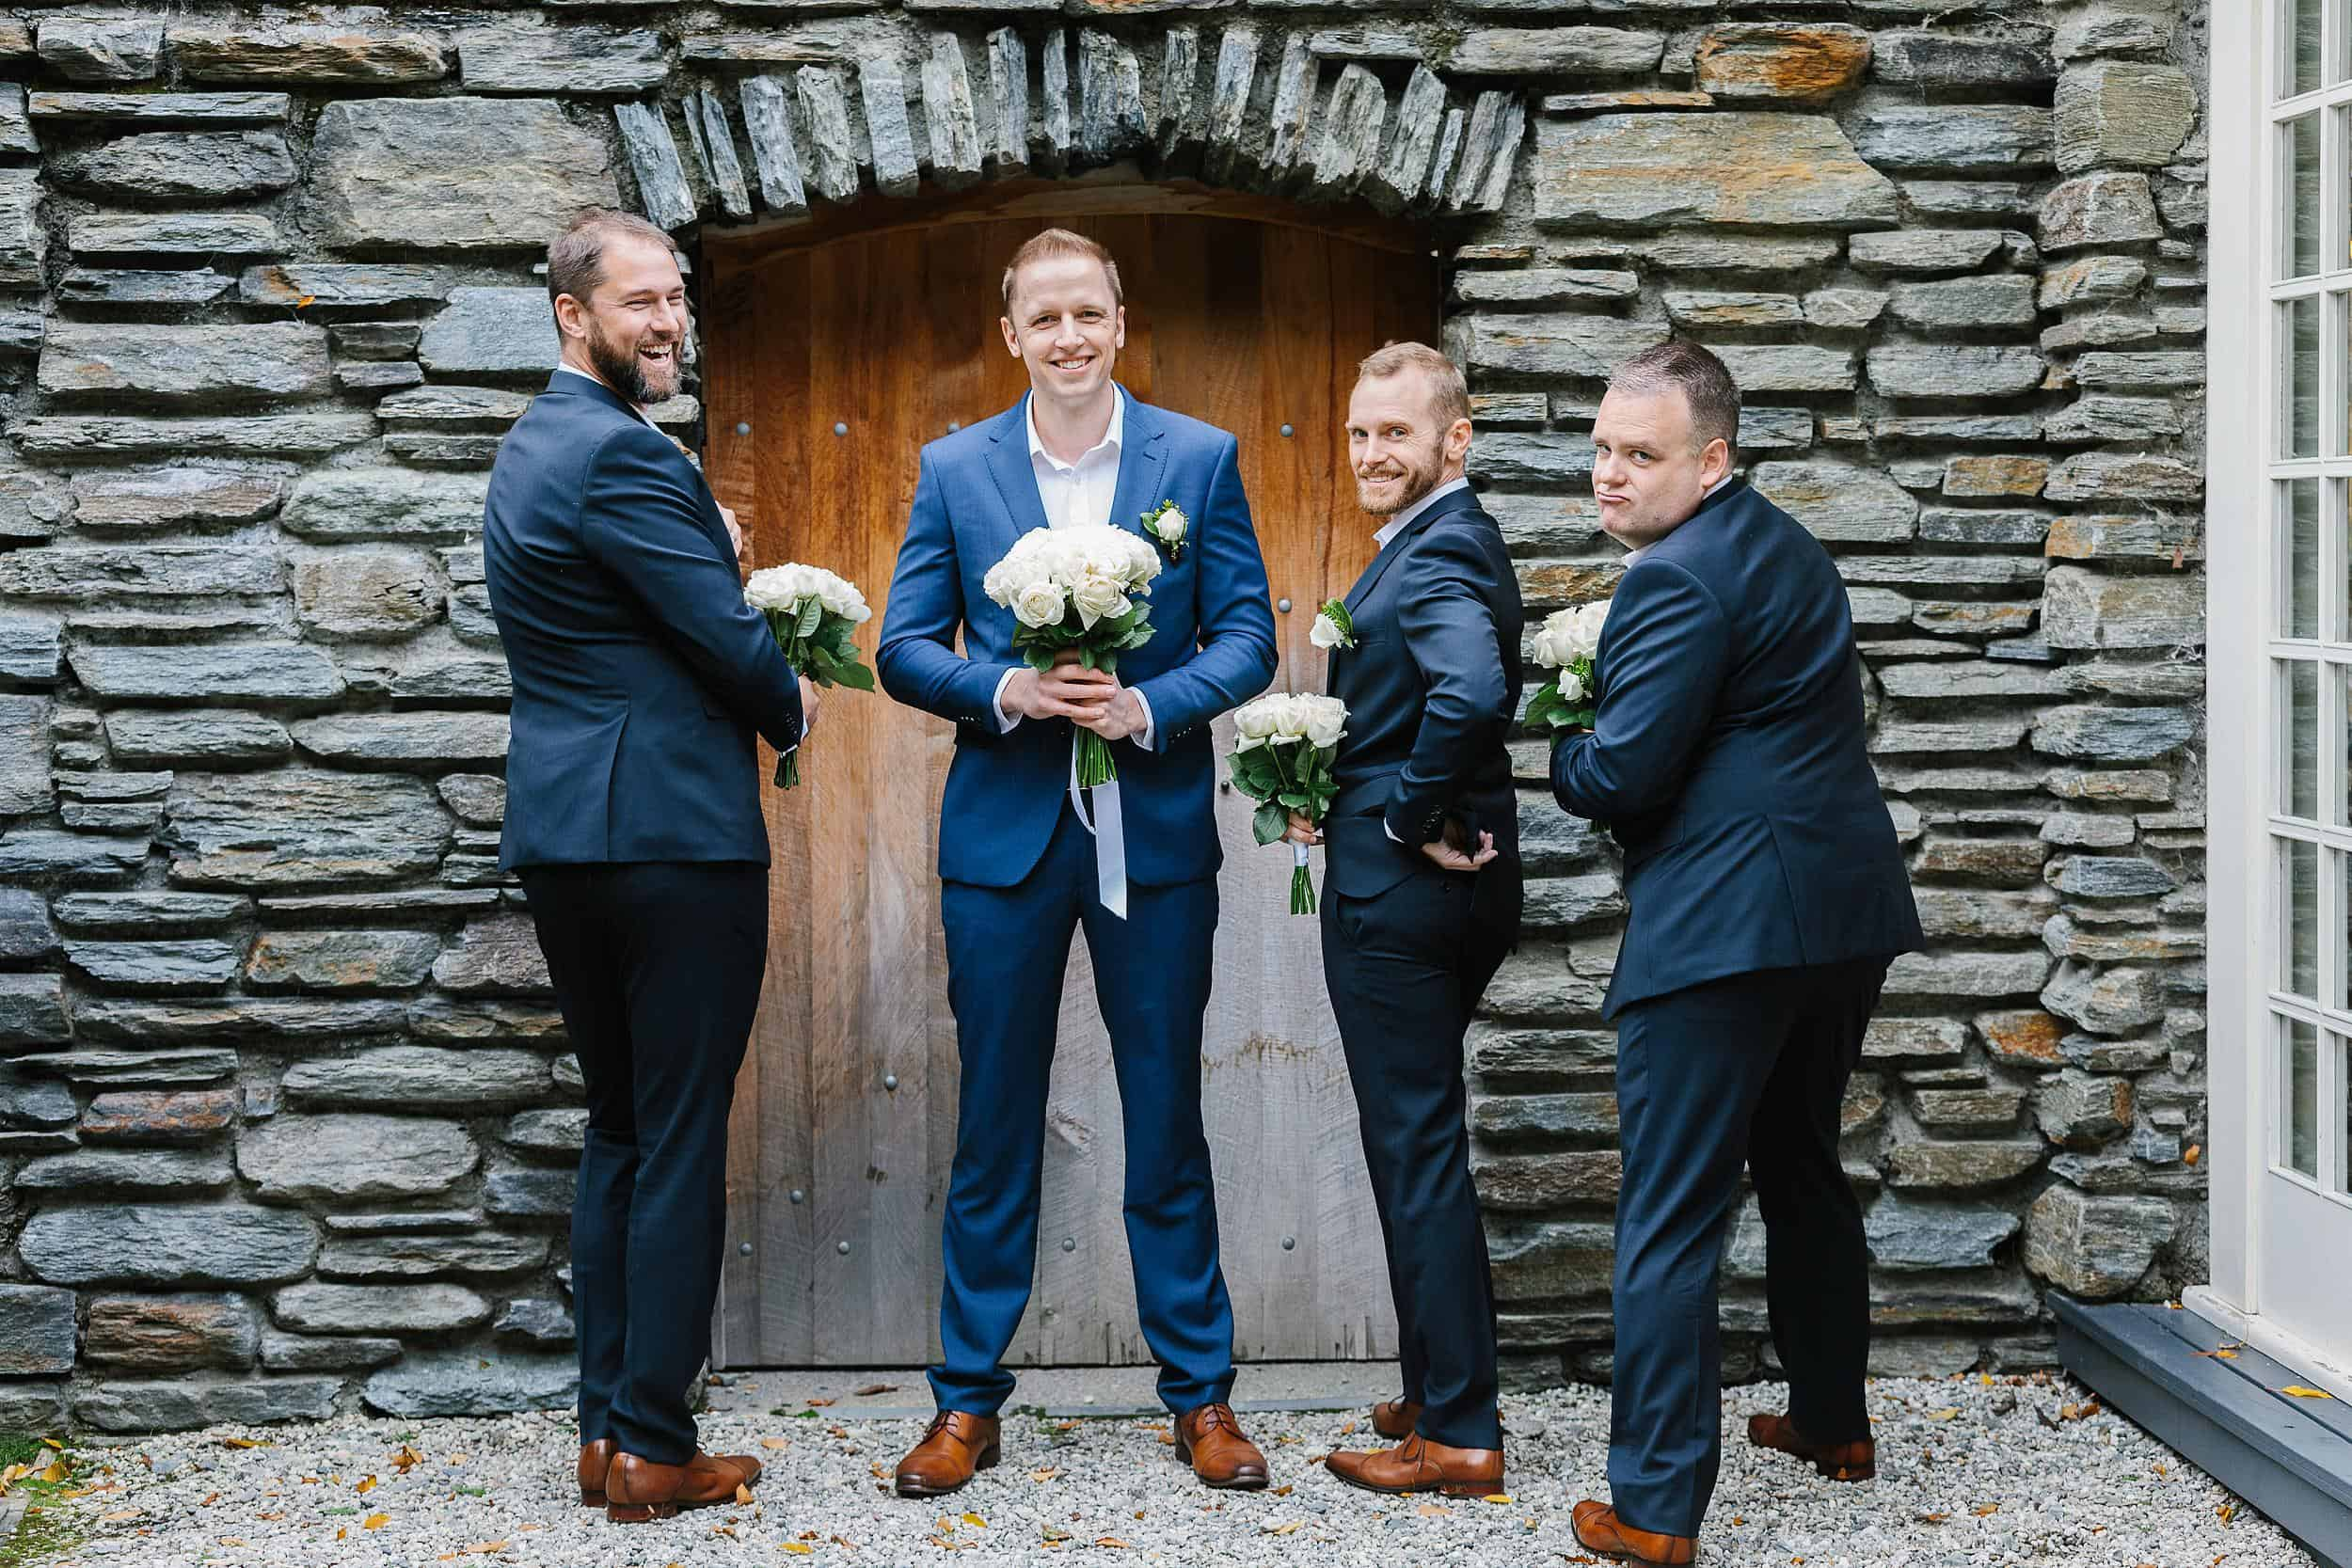 Groom with groomsmen being silly